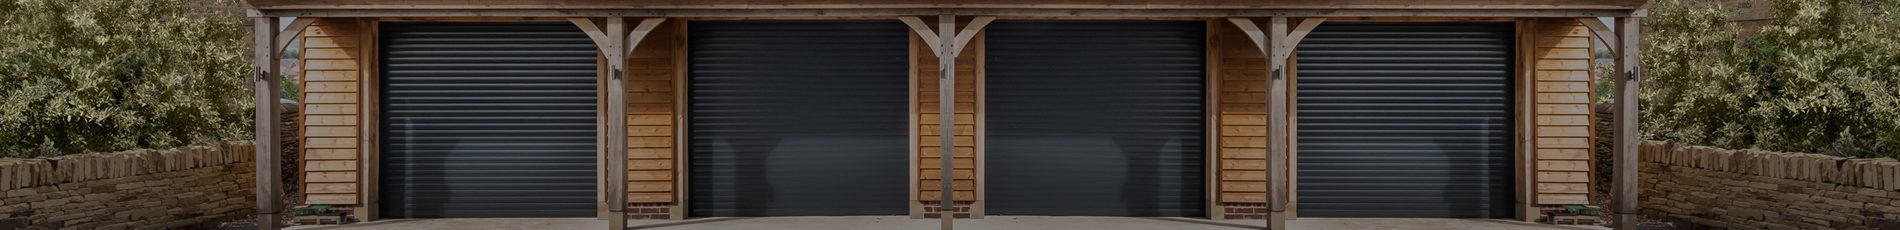 Roller Garage Doors Slough